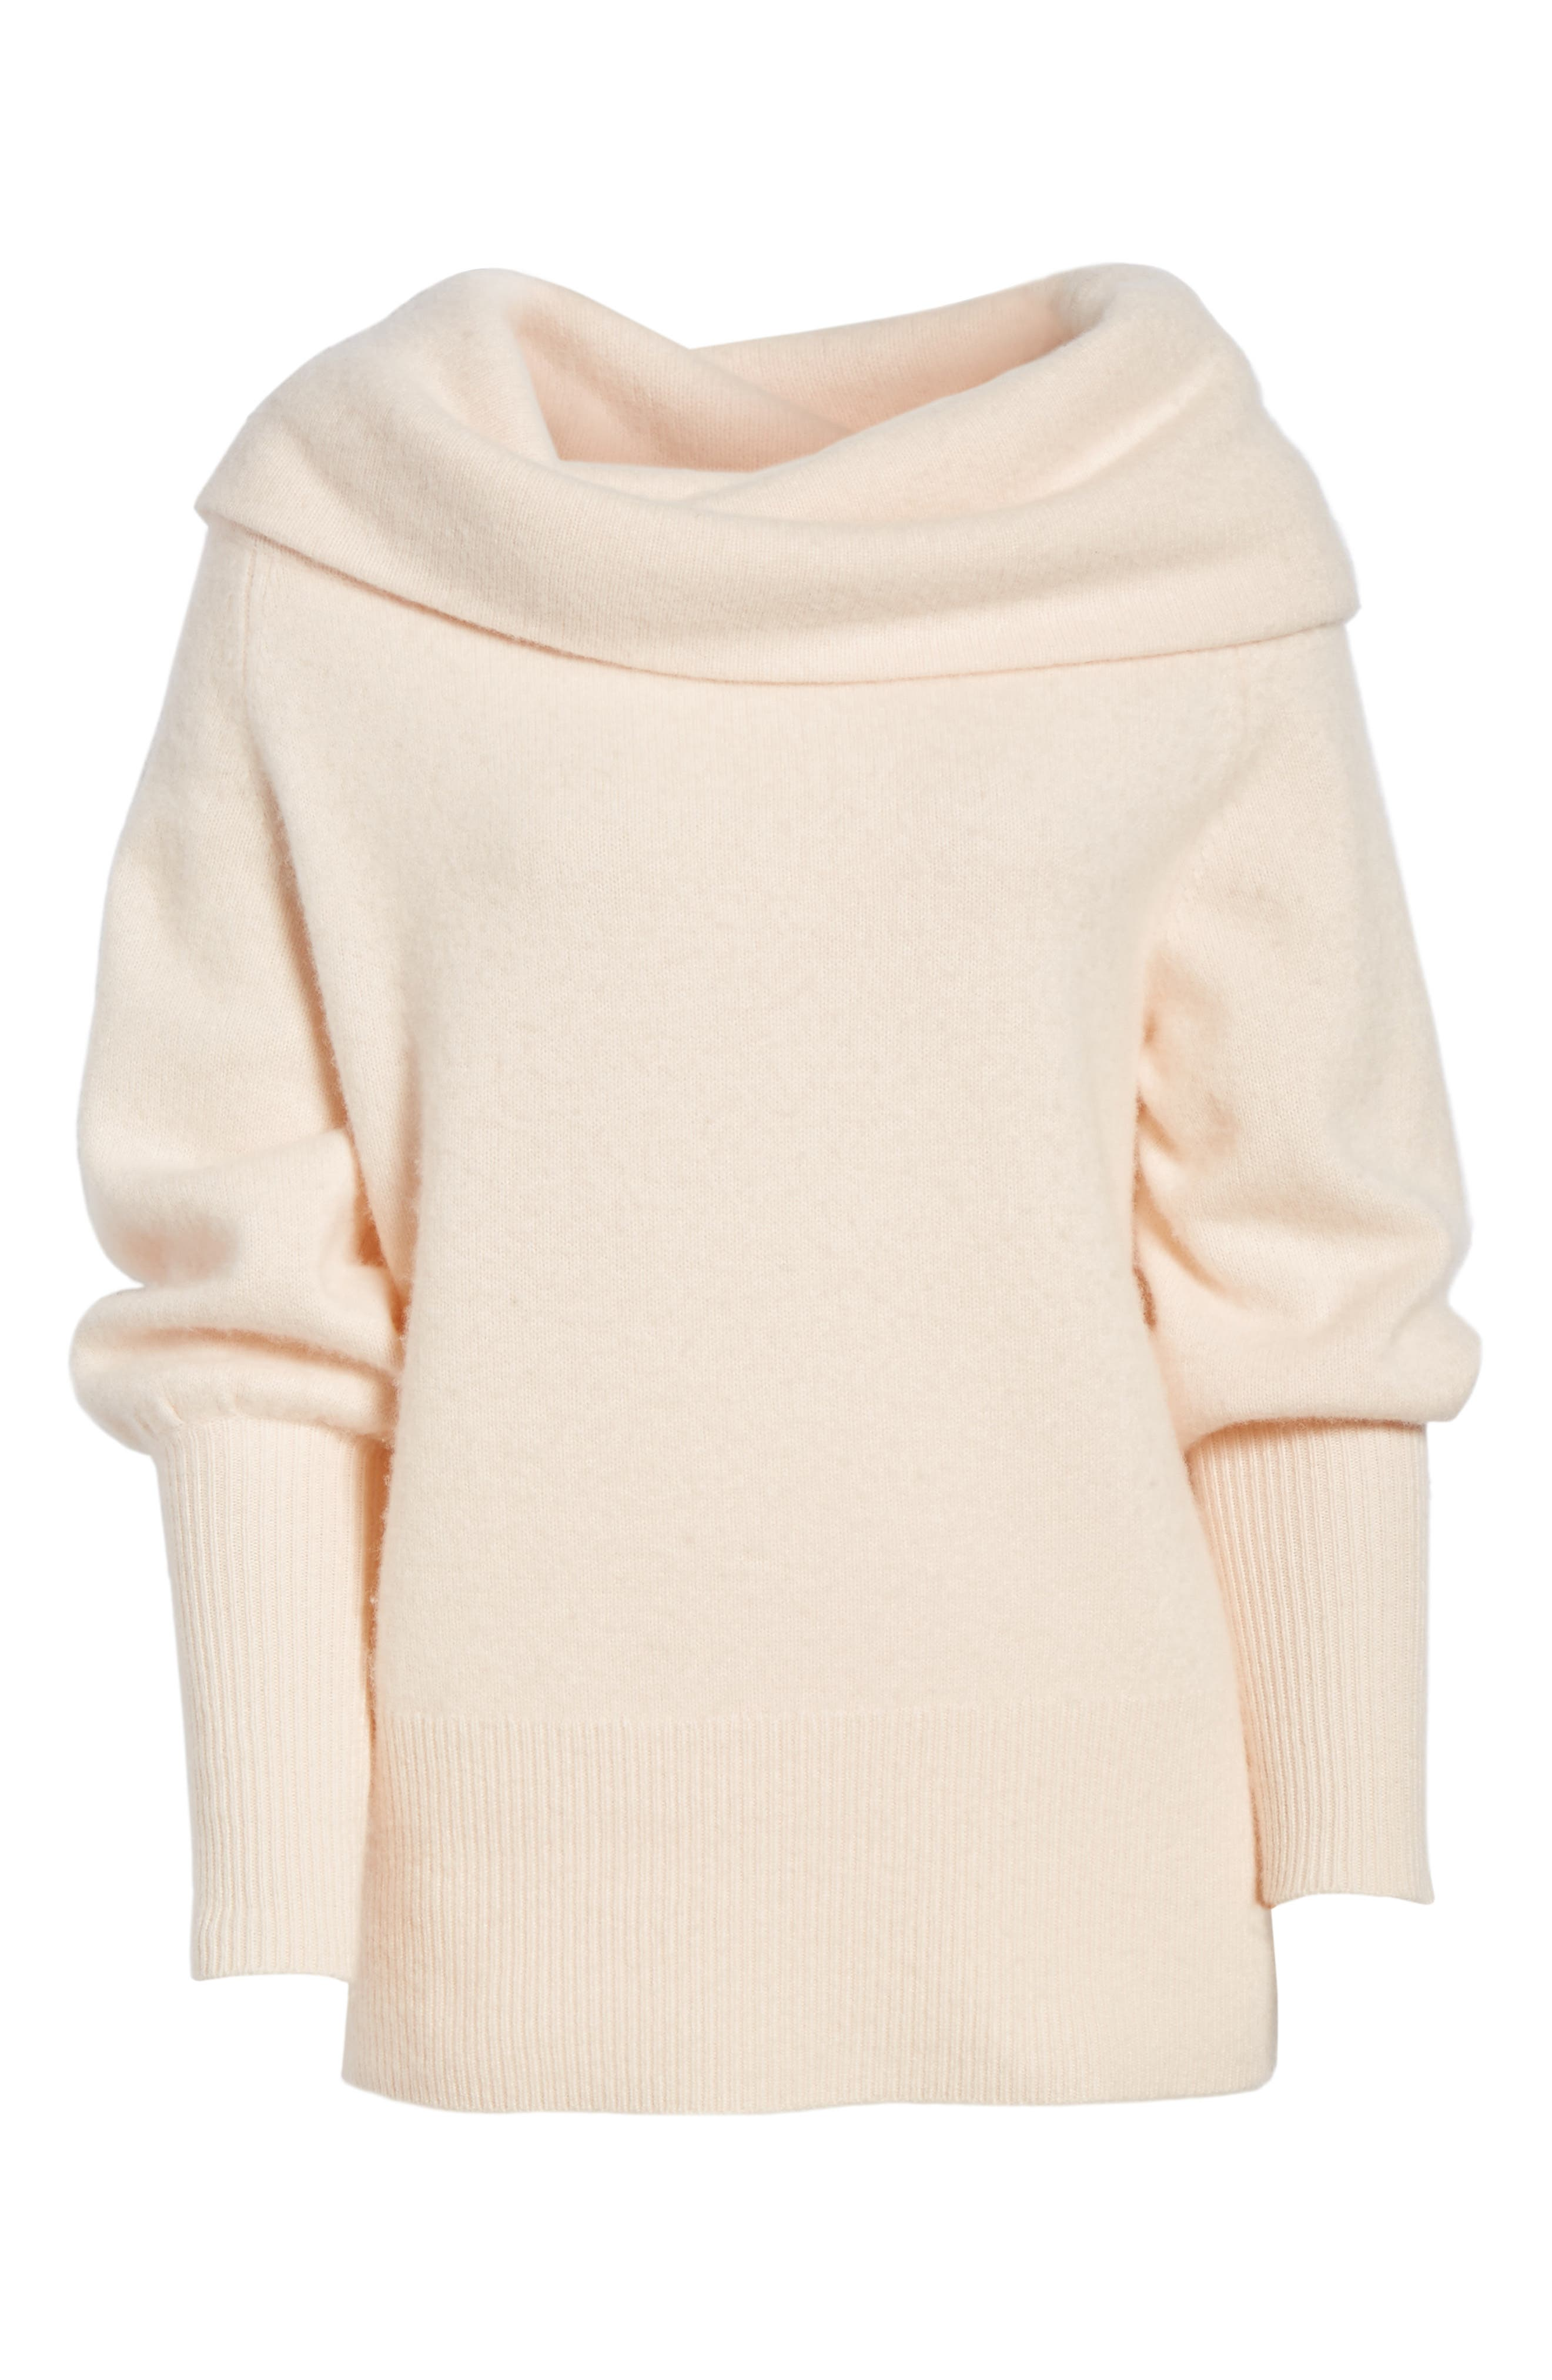 Convertible Neck Cashmere Sweater,                             Alternate thumbnail 7, color,                             Pink Adobe